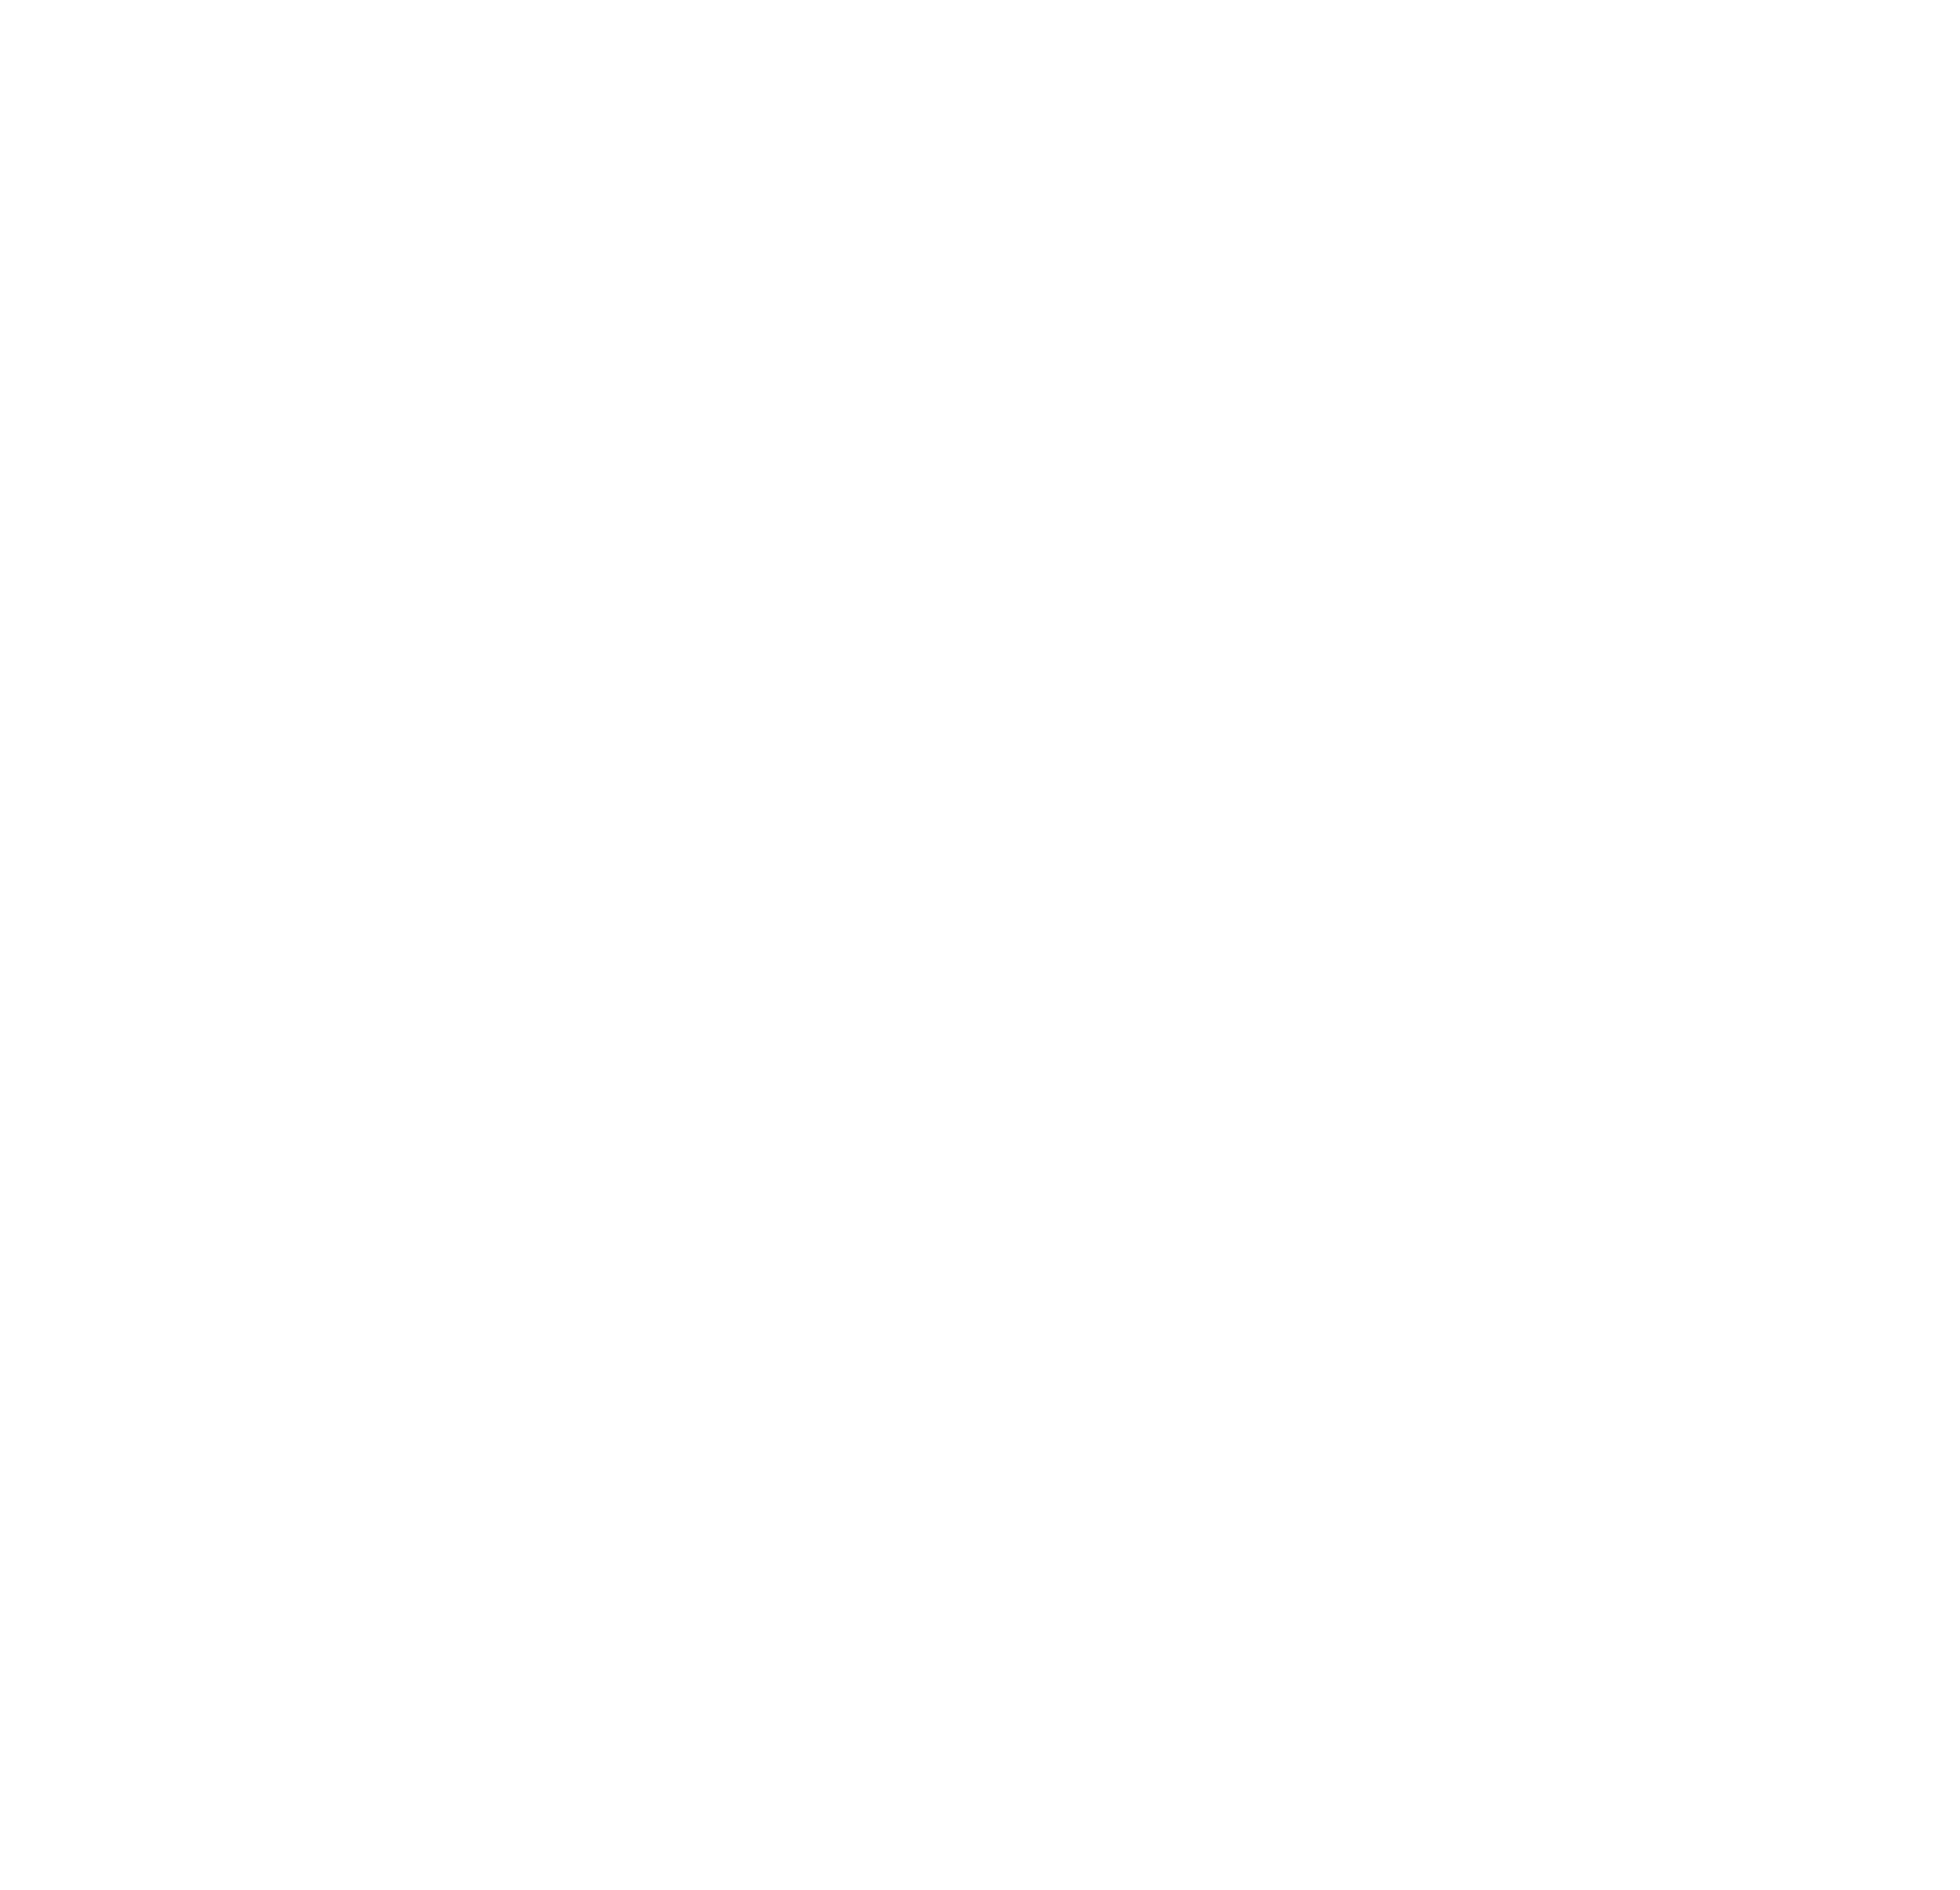 cannes dauphin argent